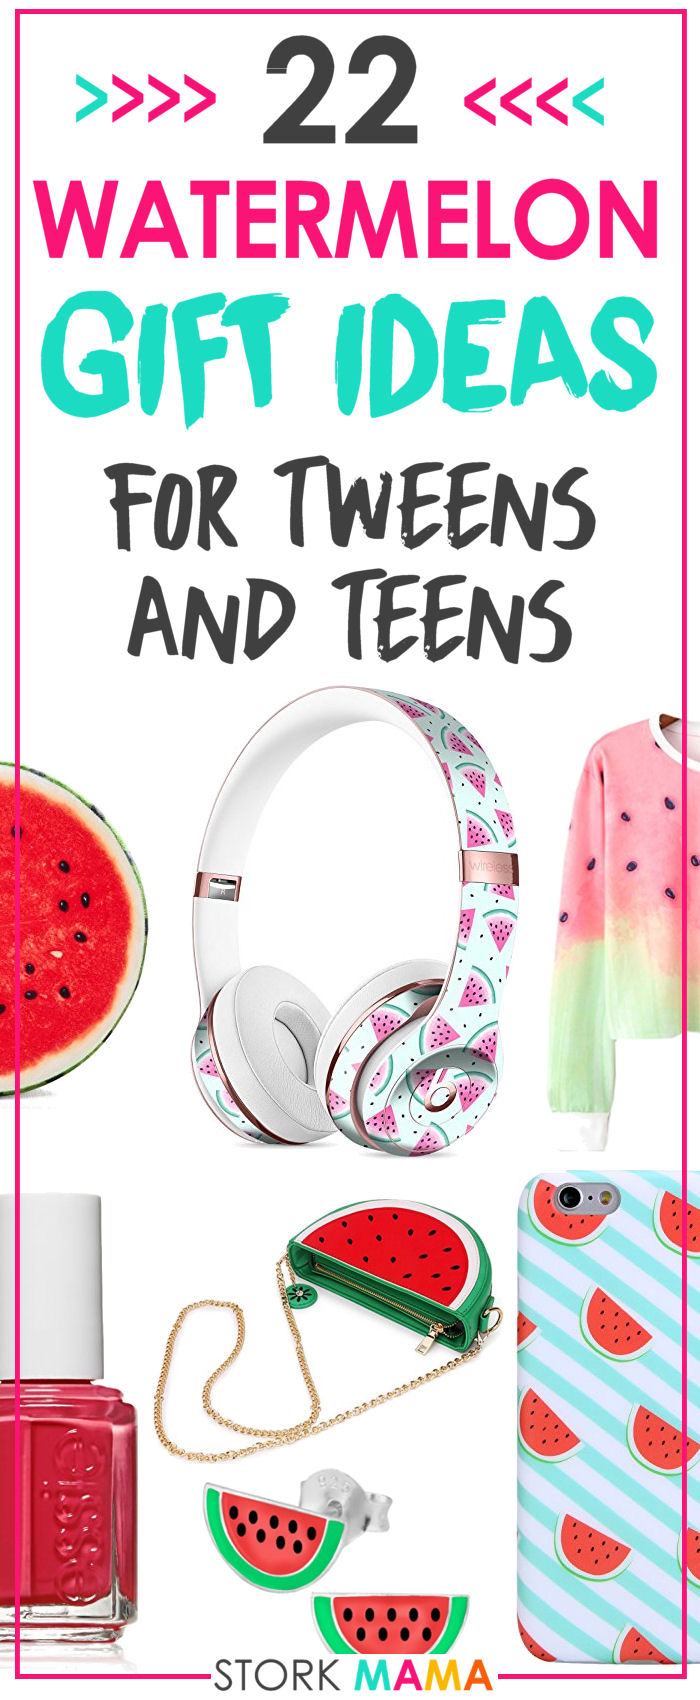 Watermelon Gift Ideas for Tweens and Teens girls